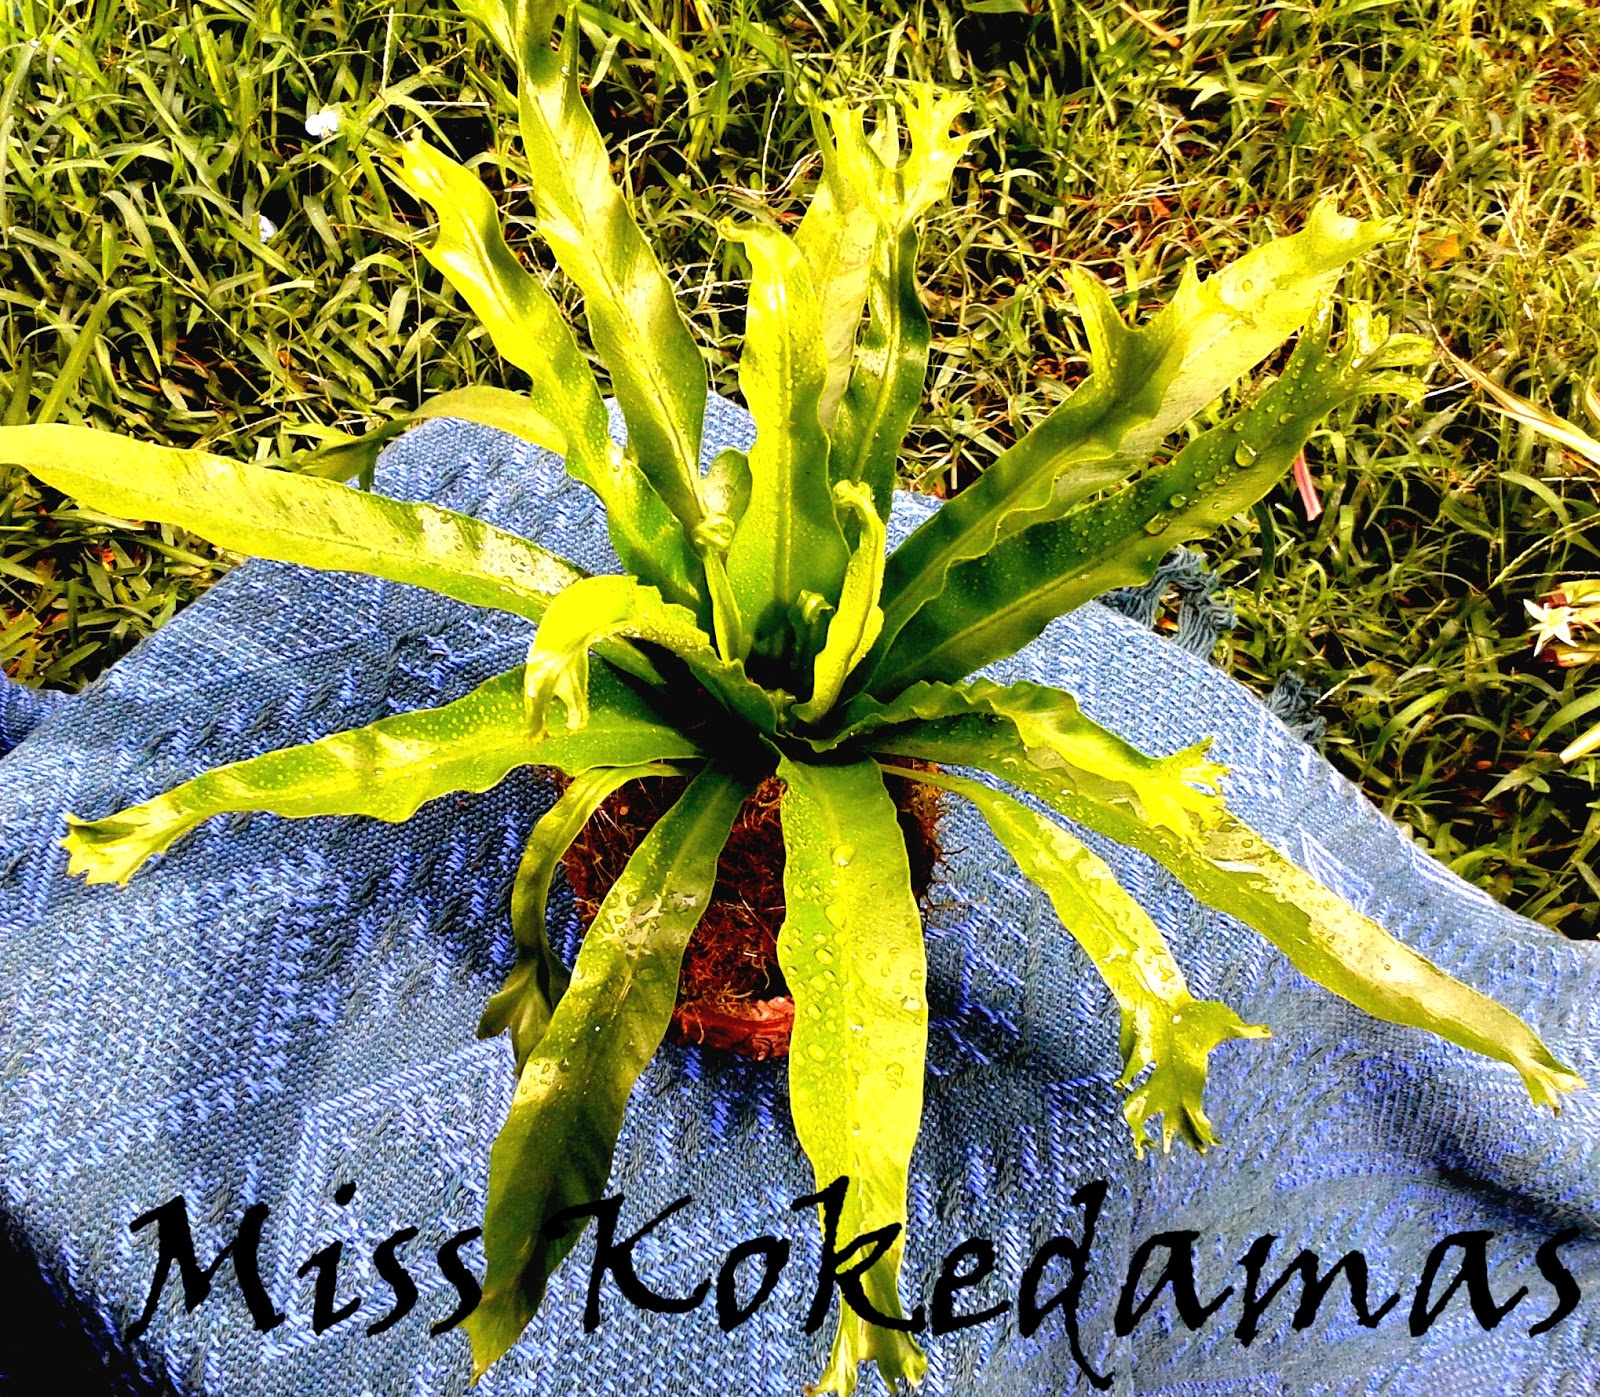 Miss kokedamas plantas decorativas de interior en macetas for Plantas decorativas resistentes